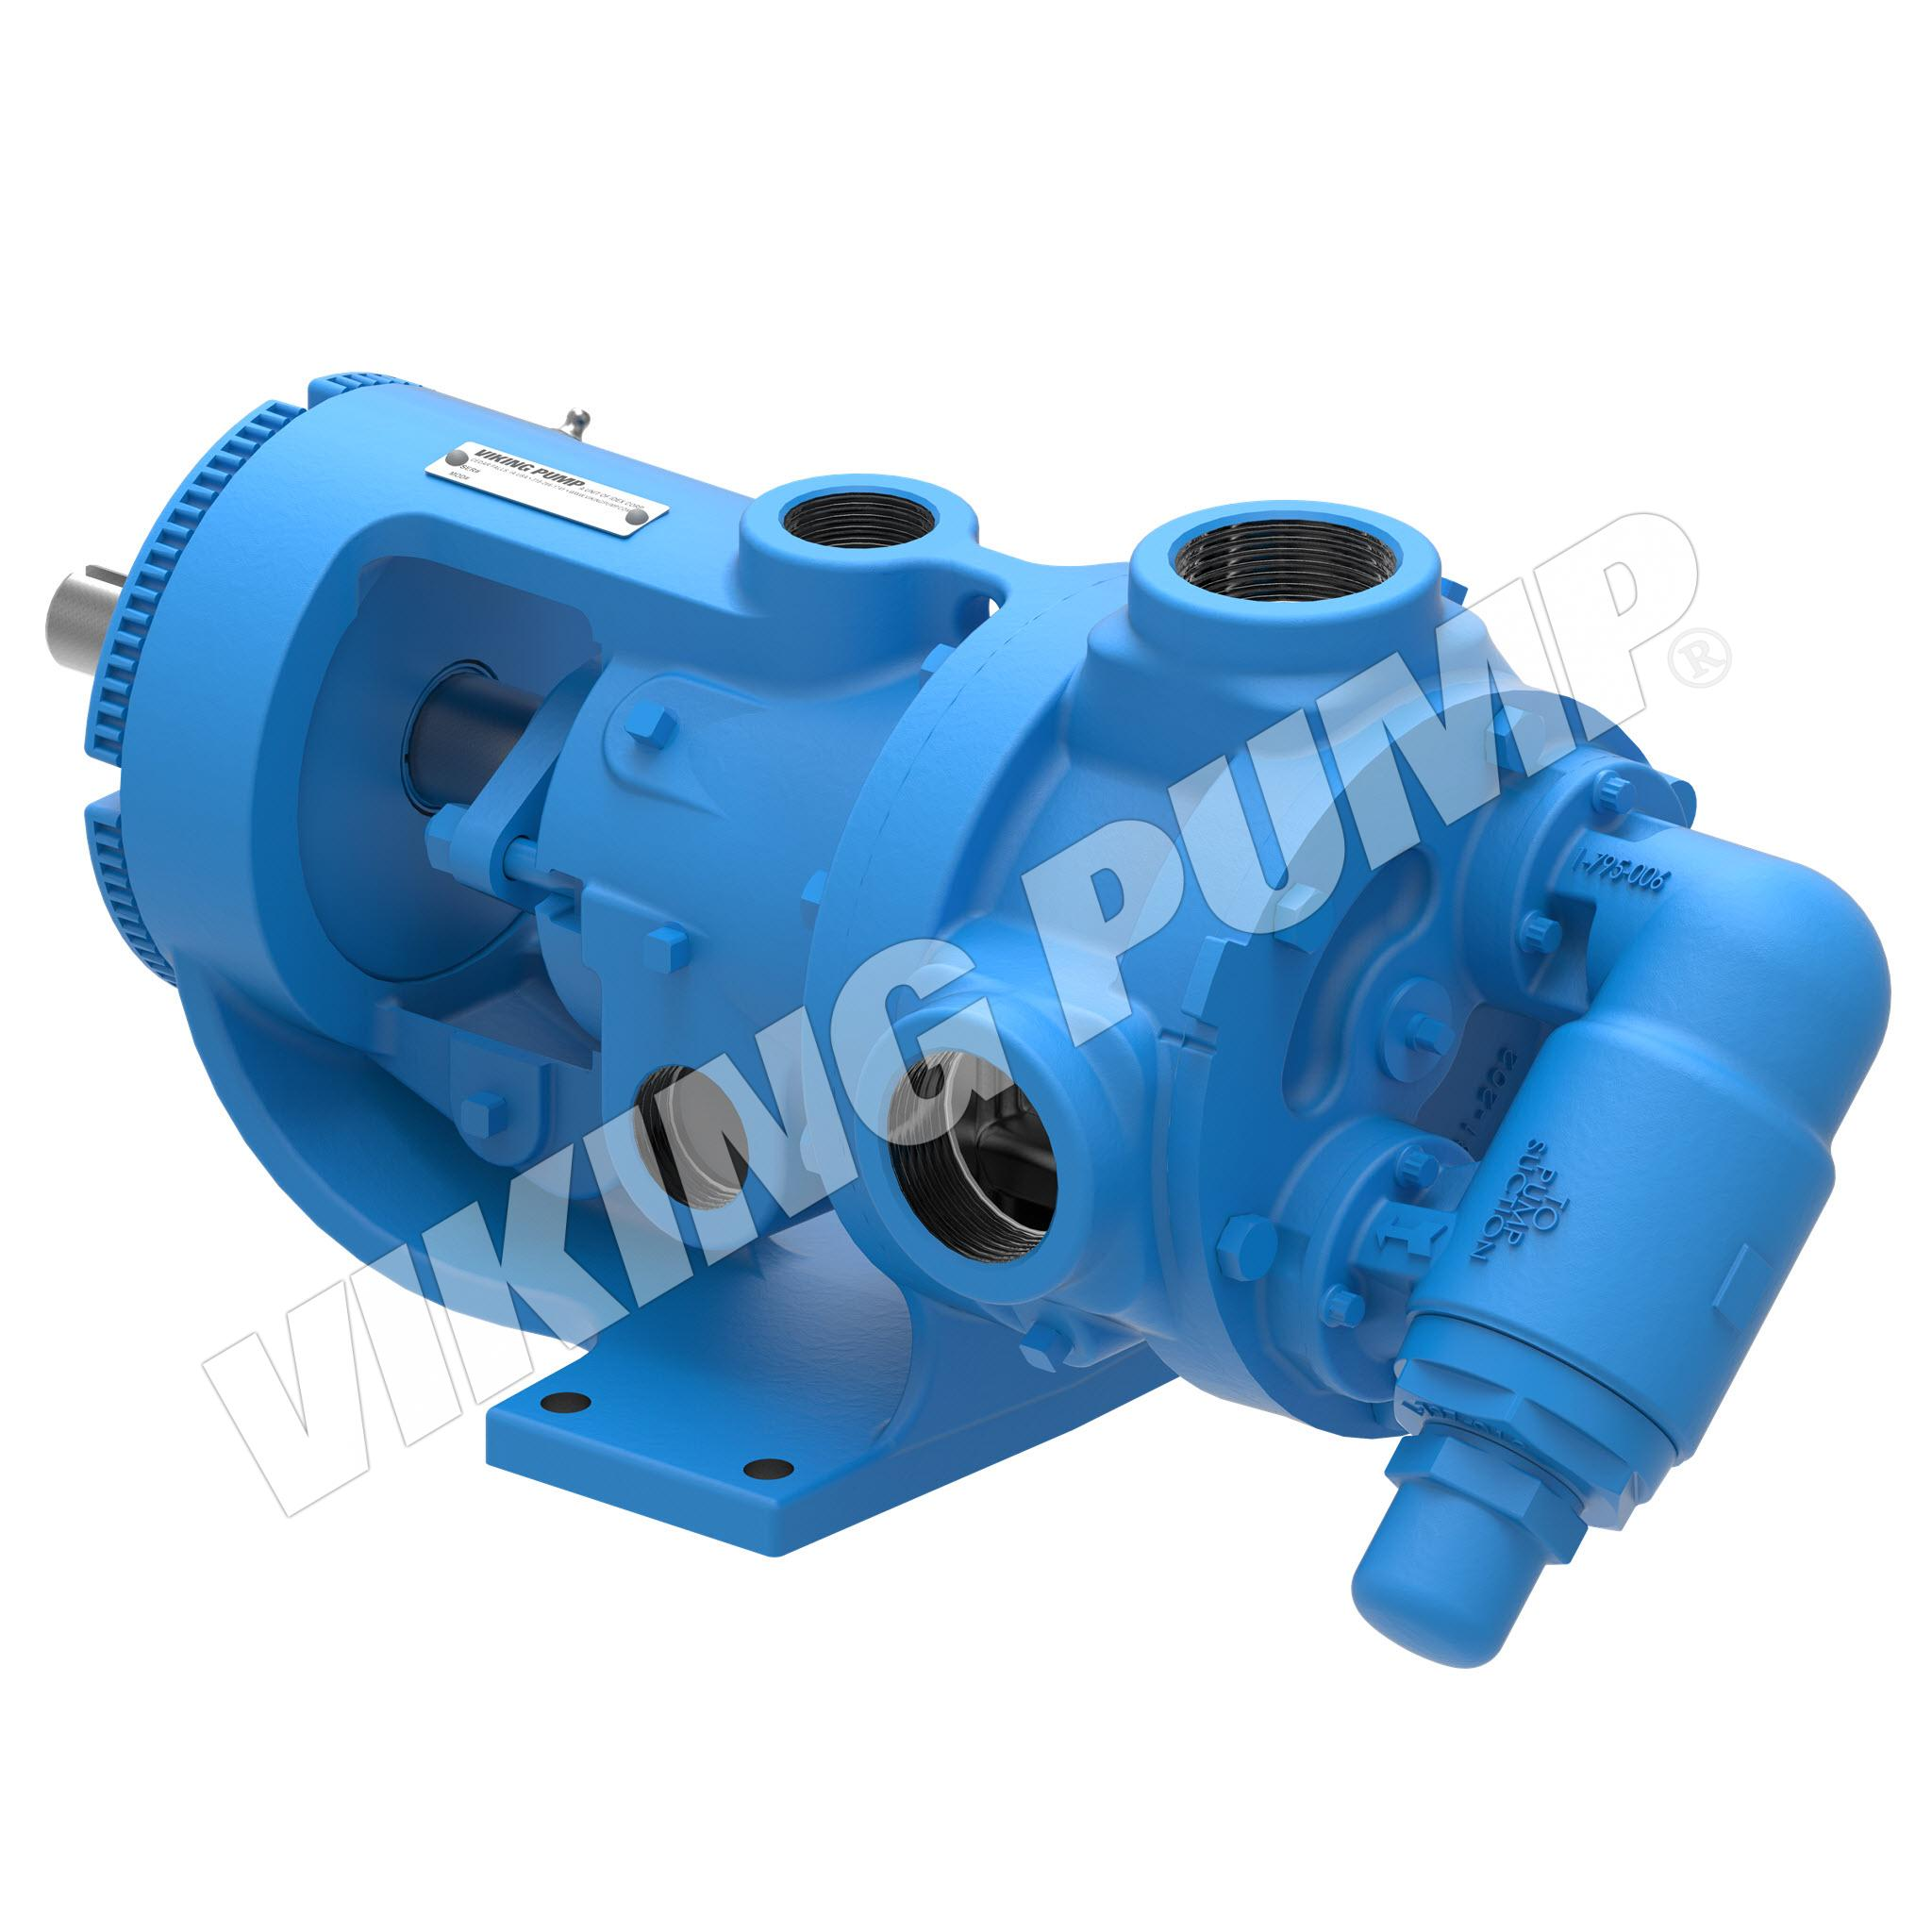 Model K4224AE, Foot Mounted, Mechanical Seal Pump w/Optional Relief Valve